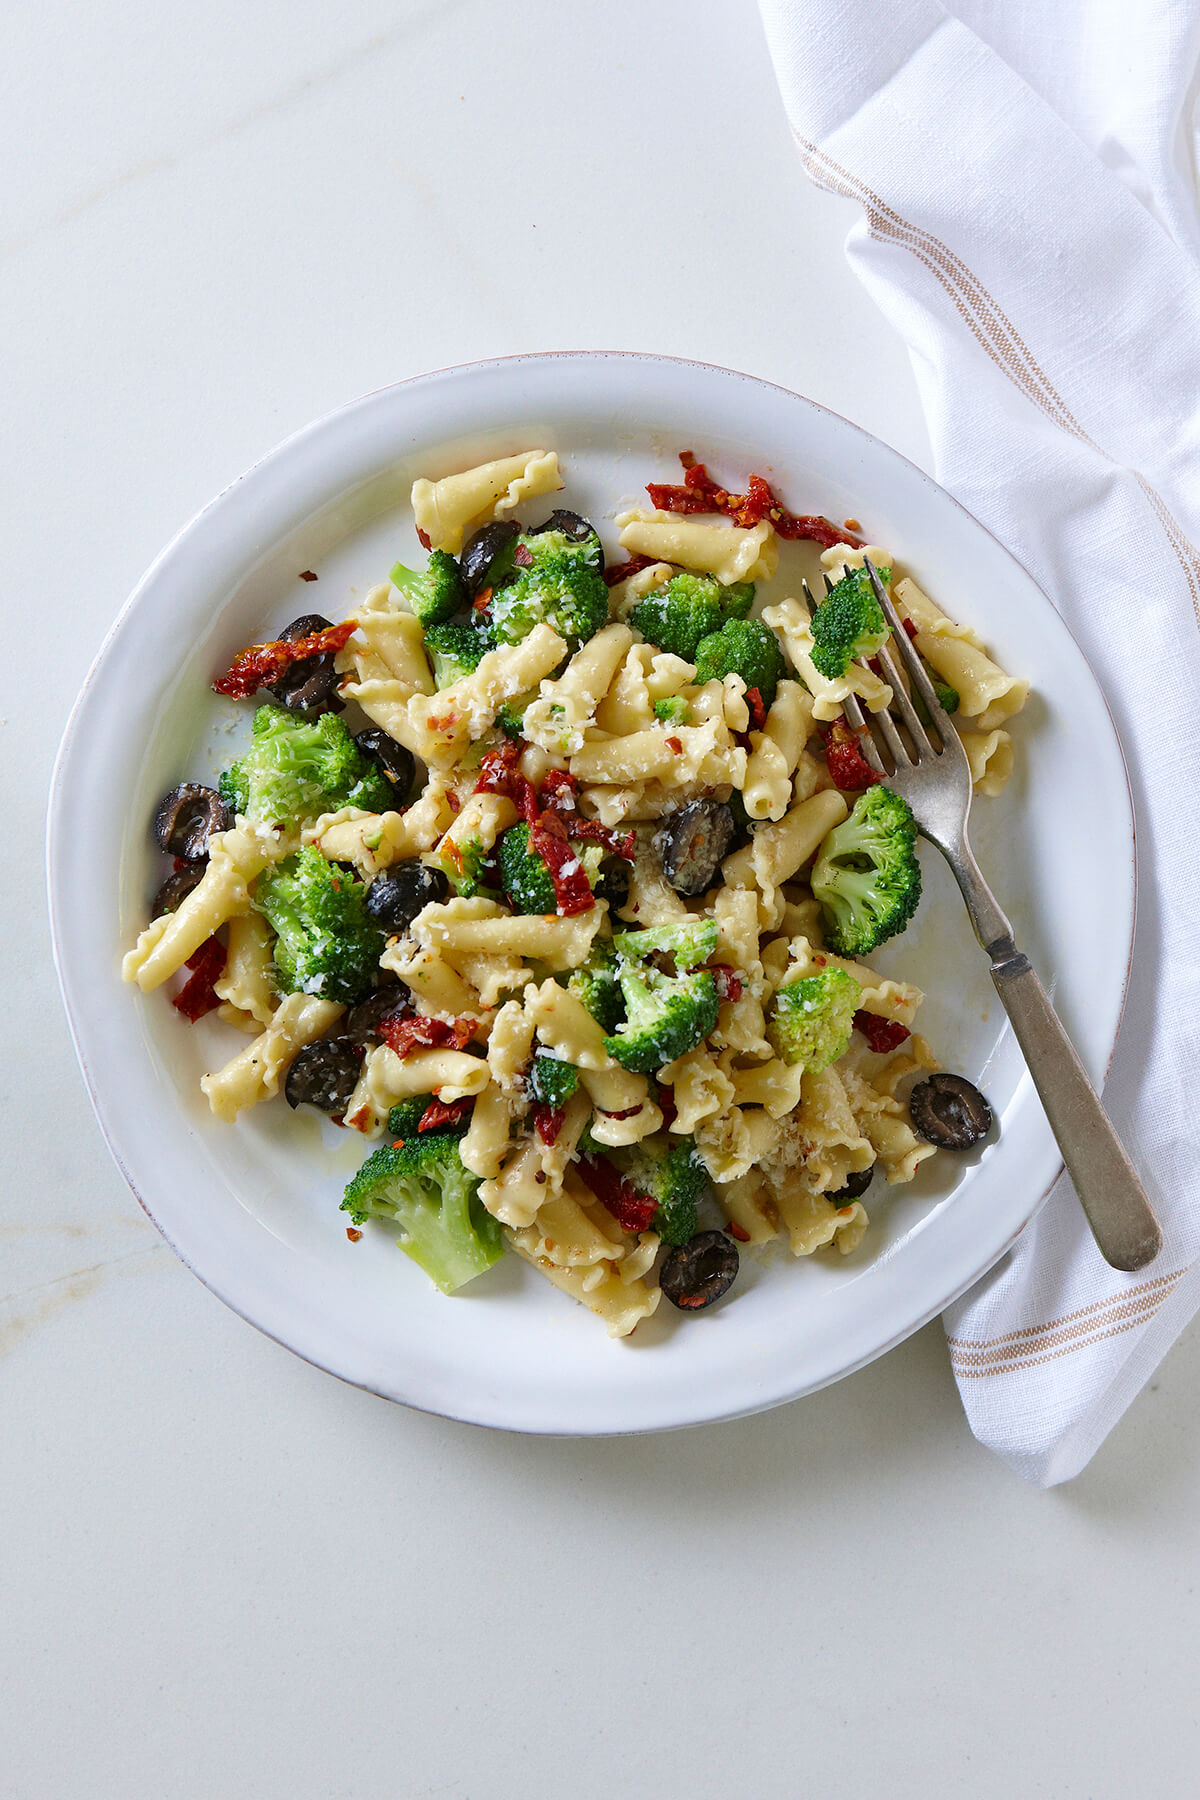 Pasta with Broccoli, Sun-dried Tomatoes, and Olives